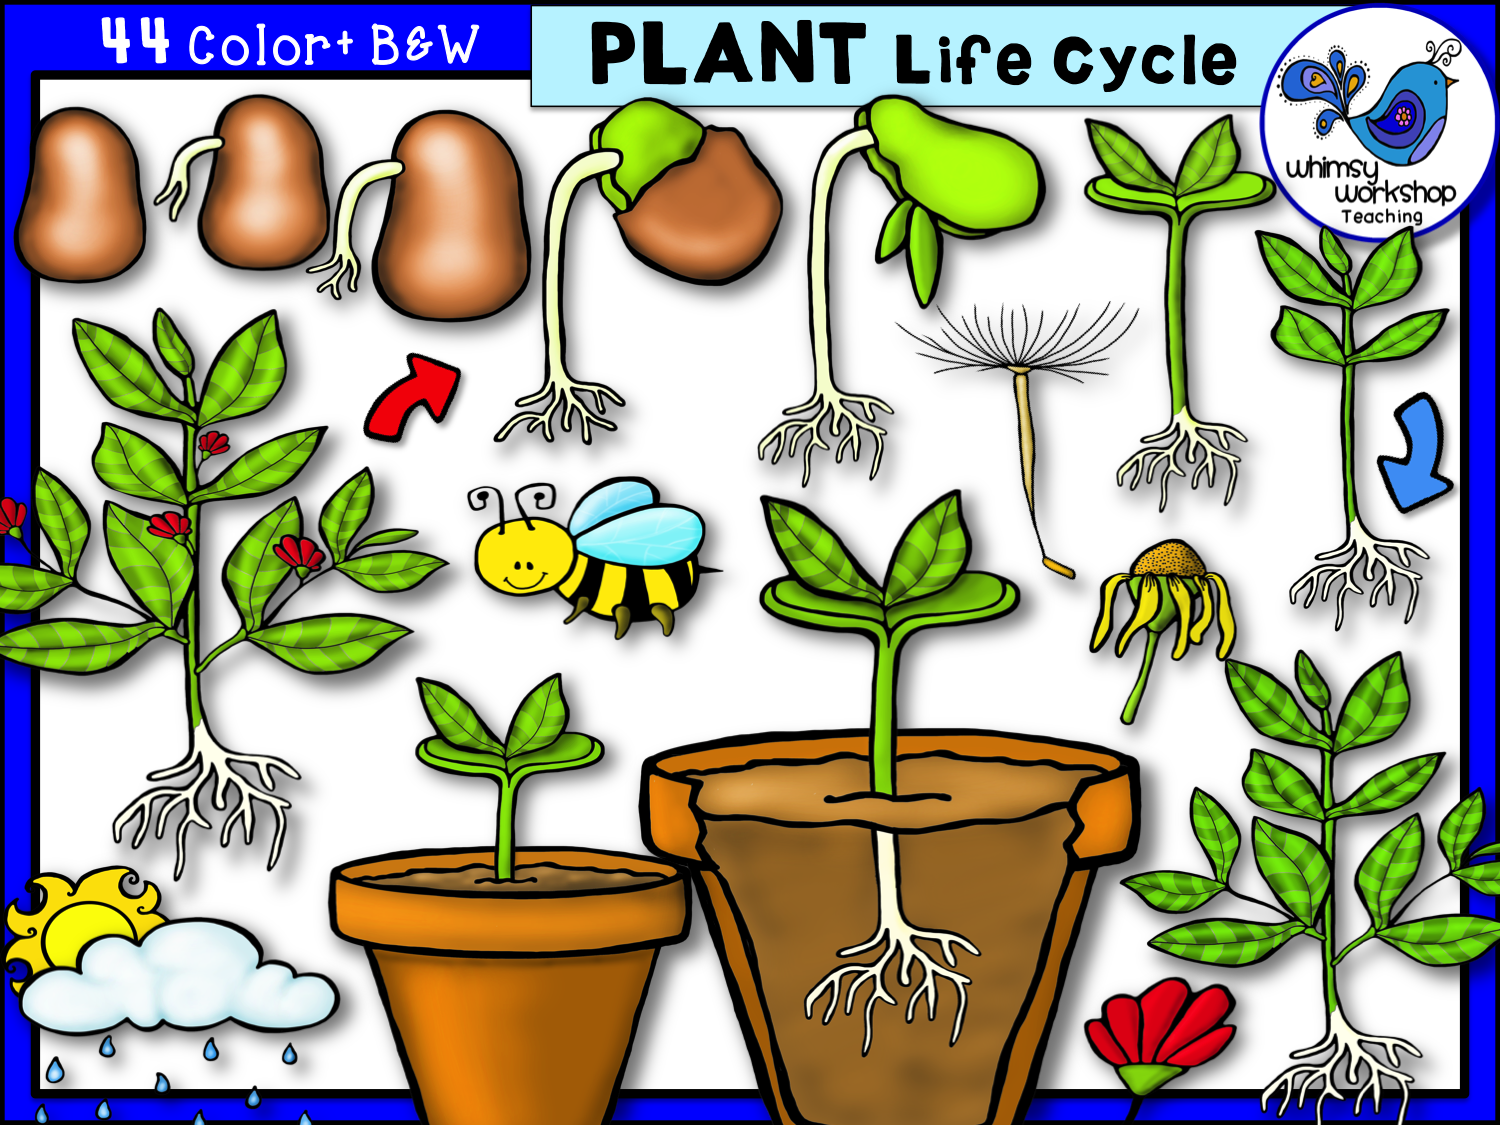 Plant life clipart transparent Plant Life Cycle Clip Art - Whimsy Workshop Teaching | R.p. transparent